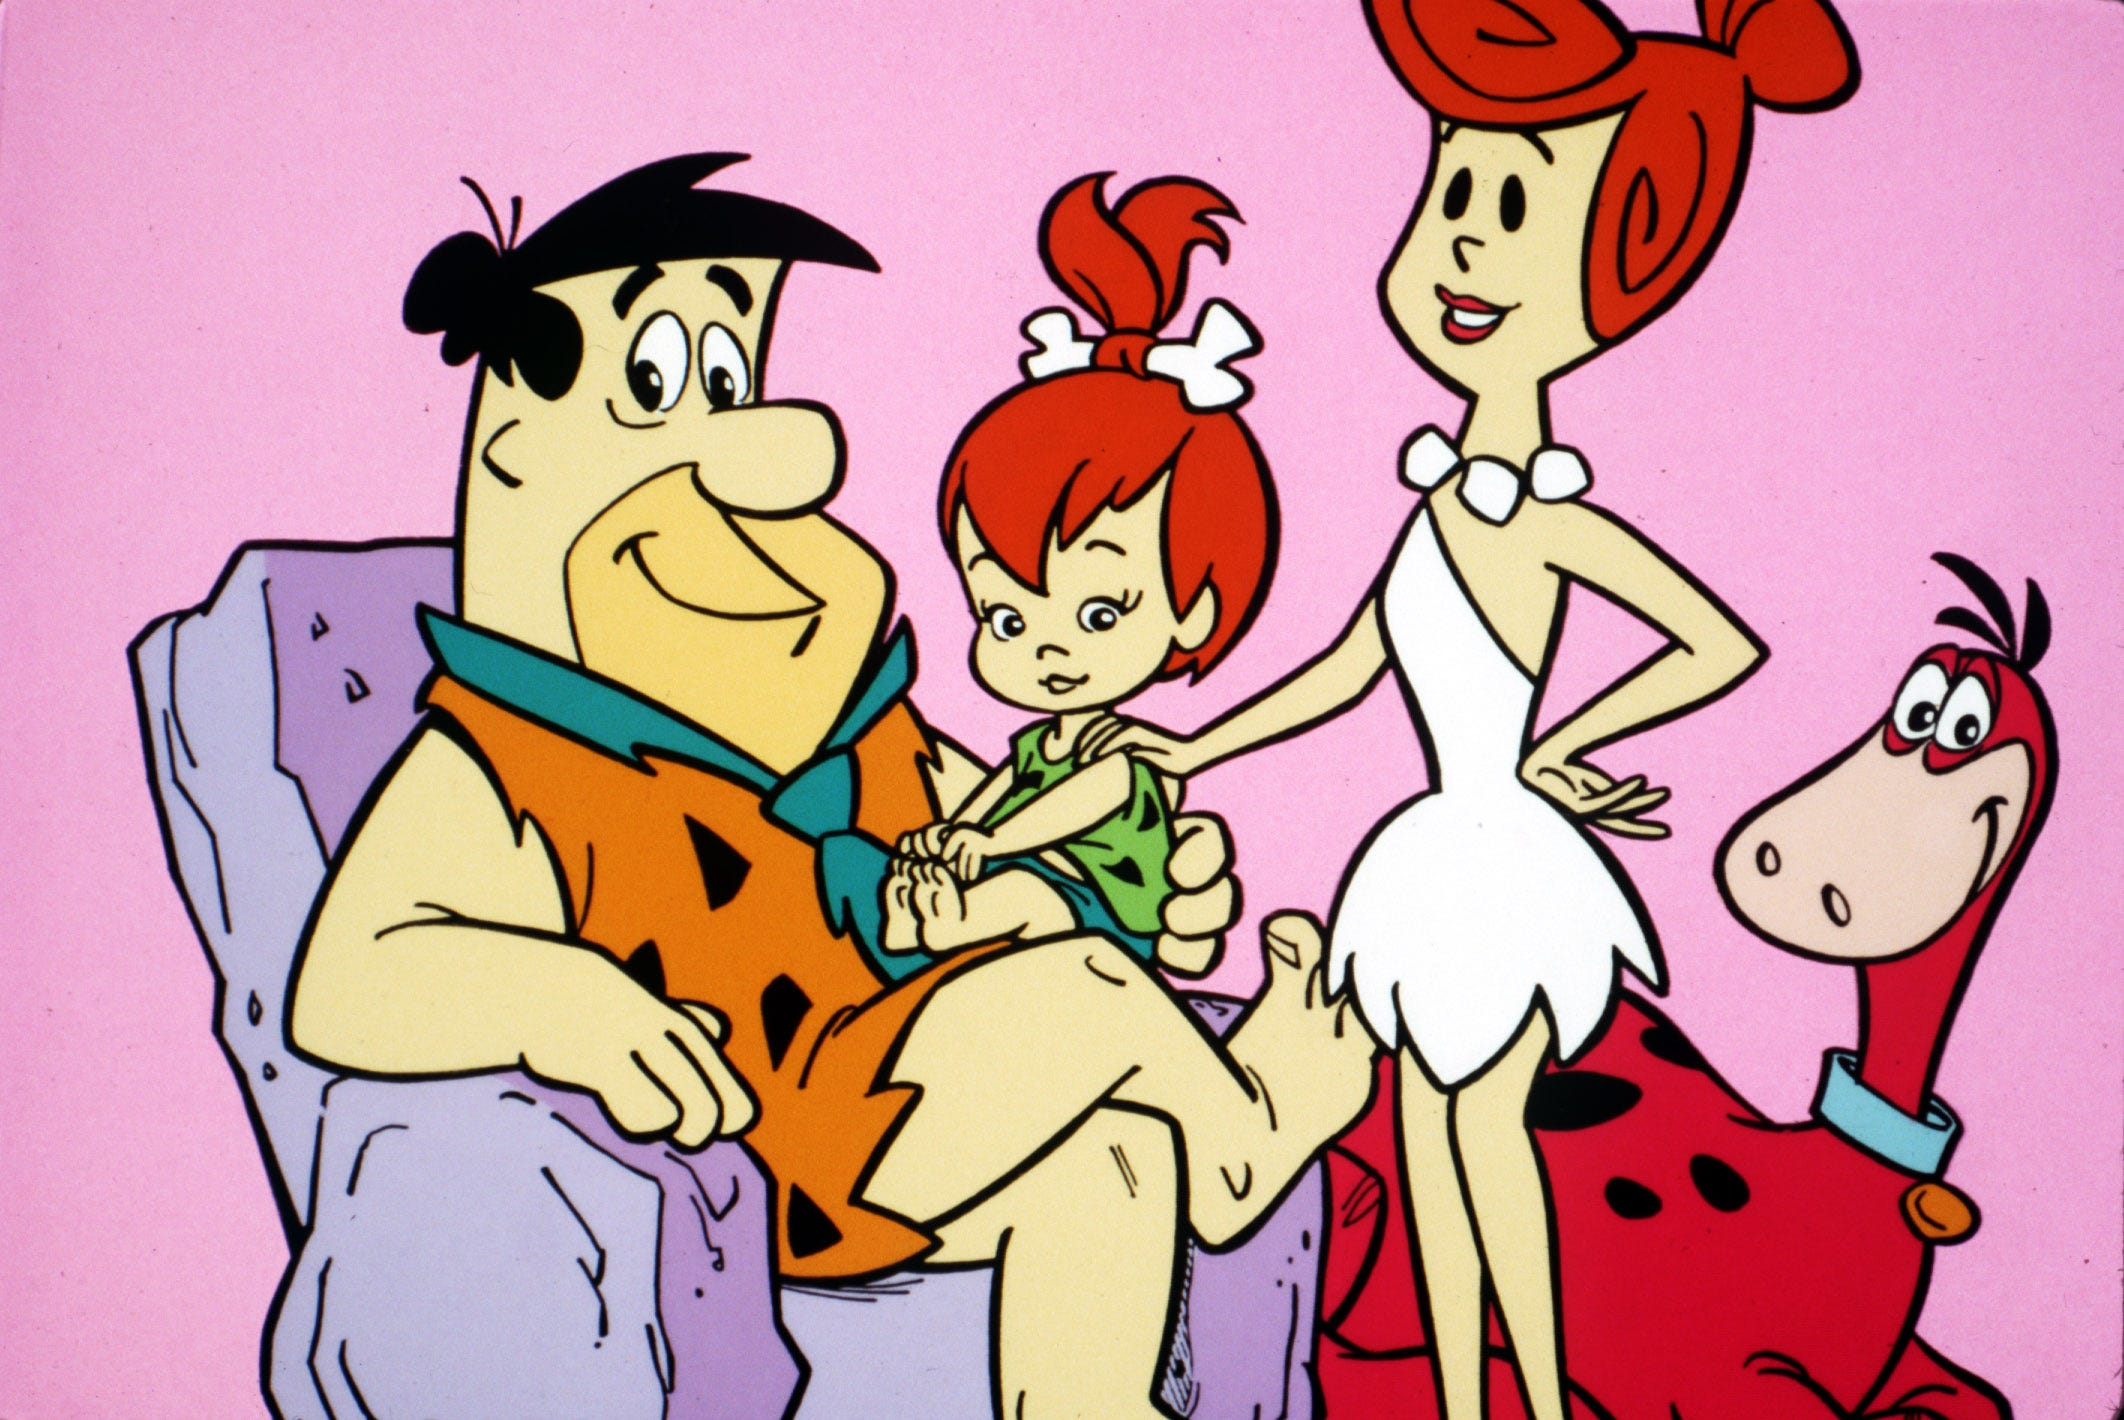 5 Unknown Facts About the Flintstones